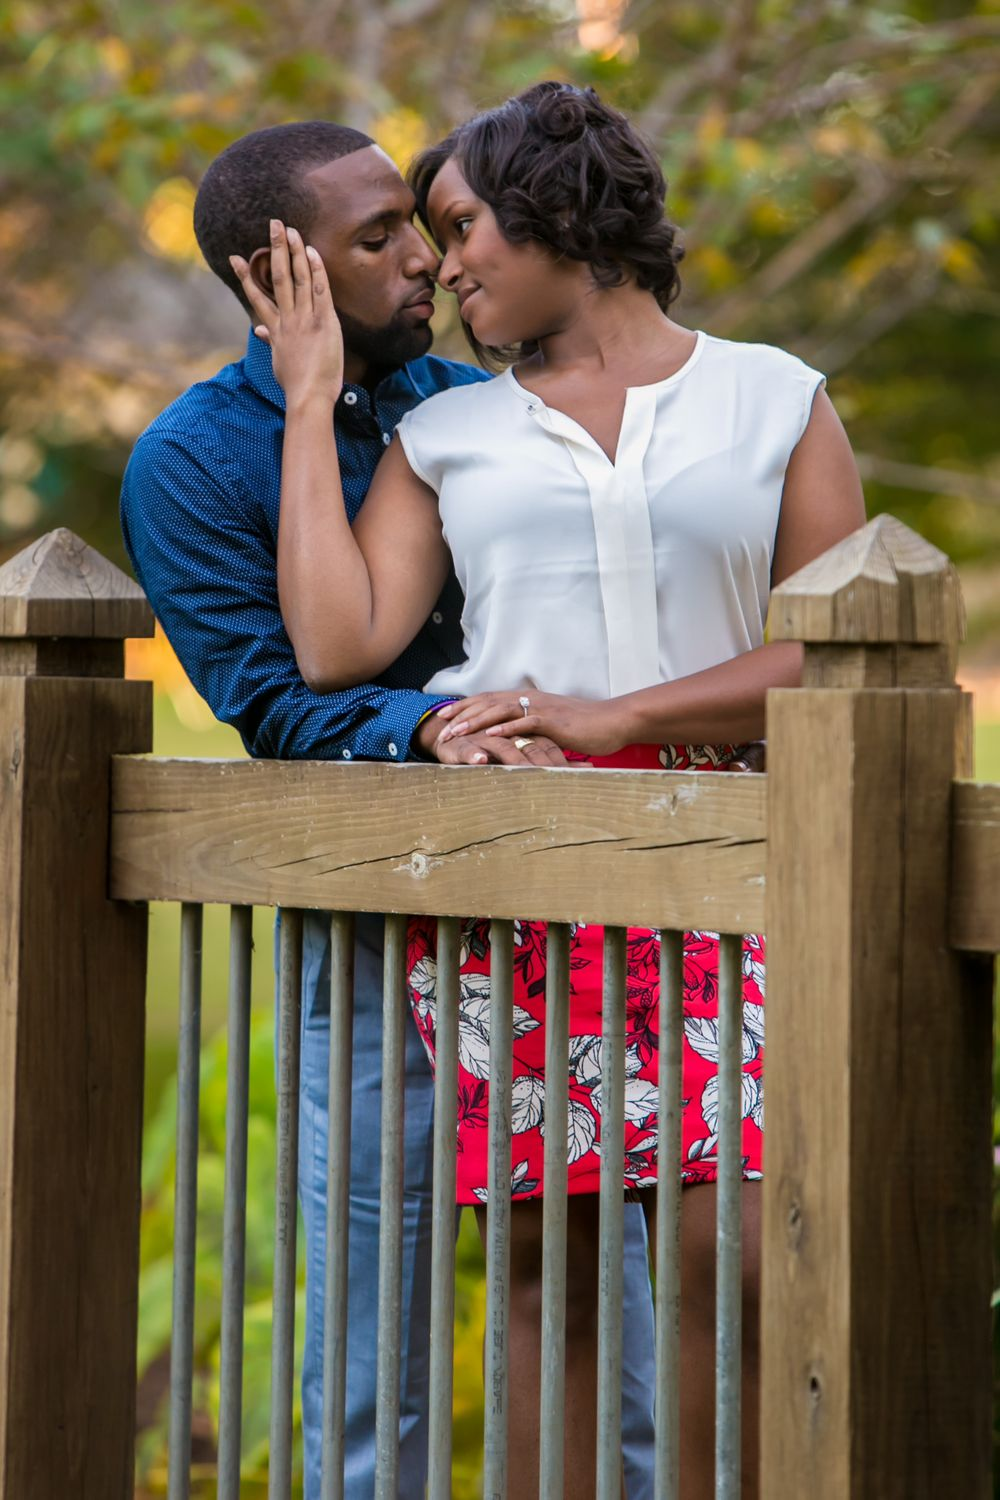 Engagement Portraits at Irmo Town Park in Irmo, SC